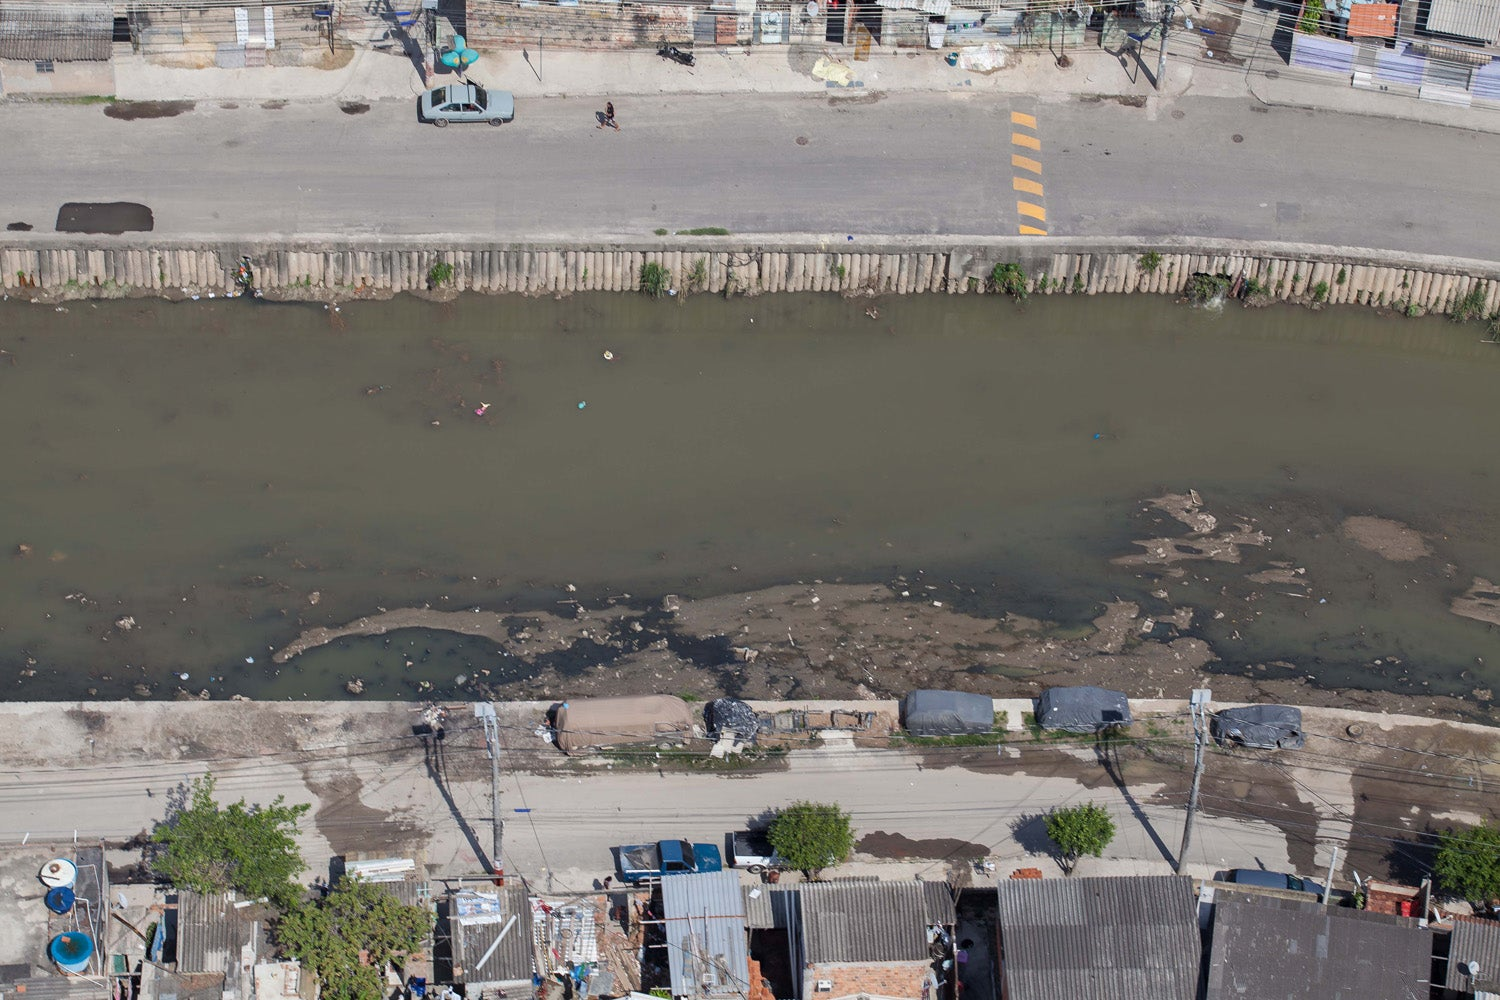 Rio's Olympic Site Looks Even Worse From the Air